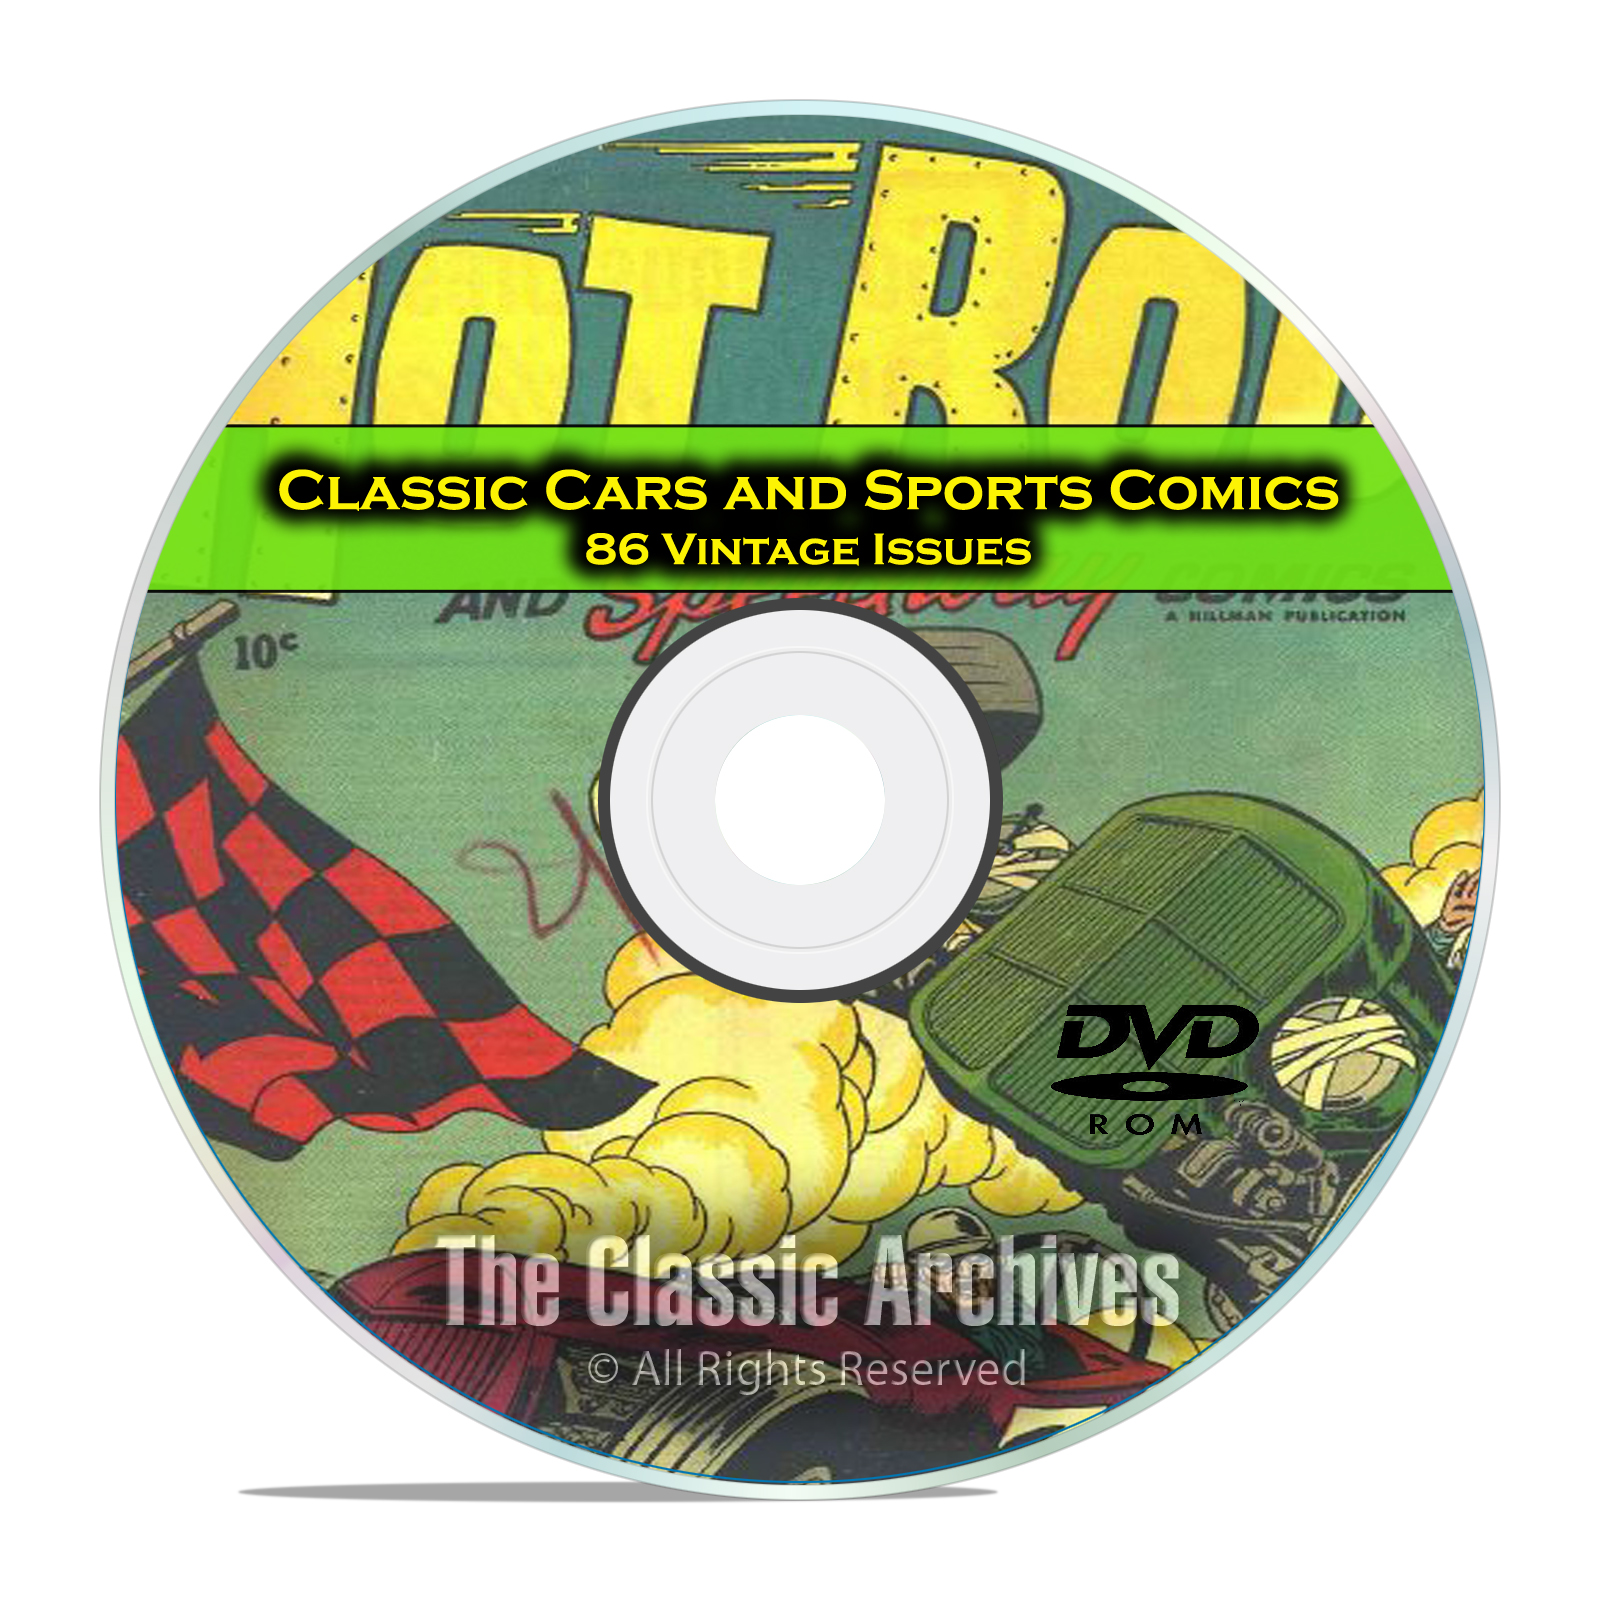 Classic Car Comics, Sports Comics, 86 Vintage Issues, Golden Age Comics DVD